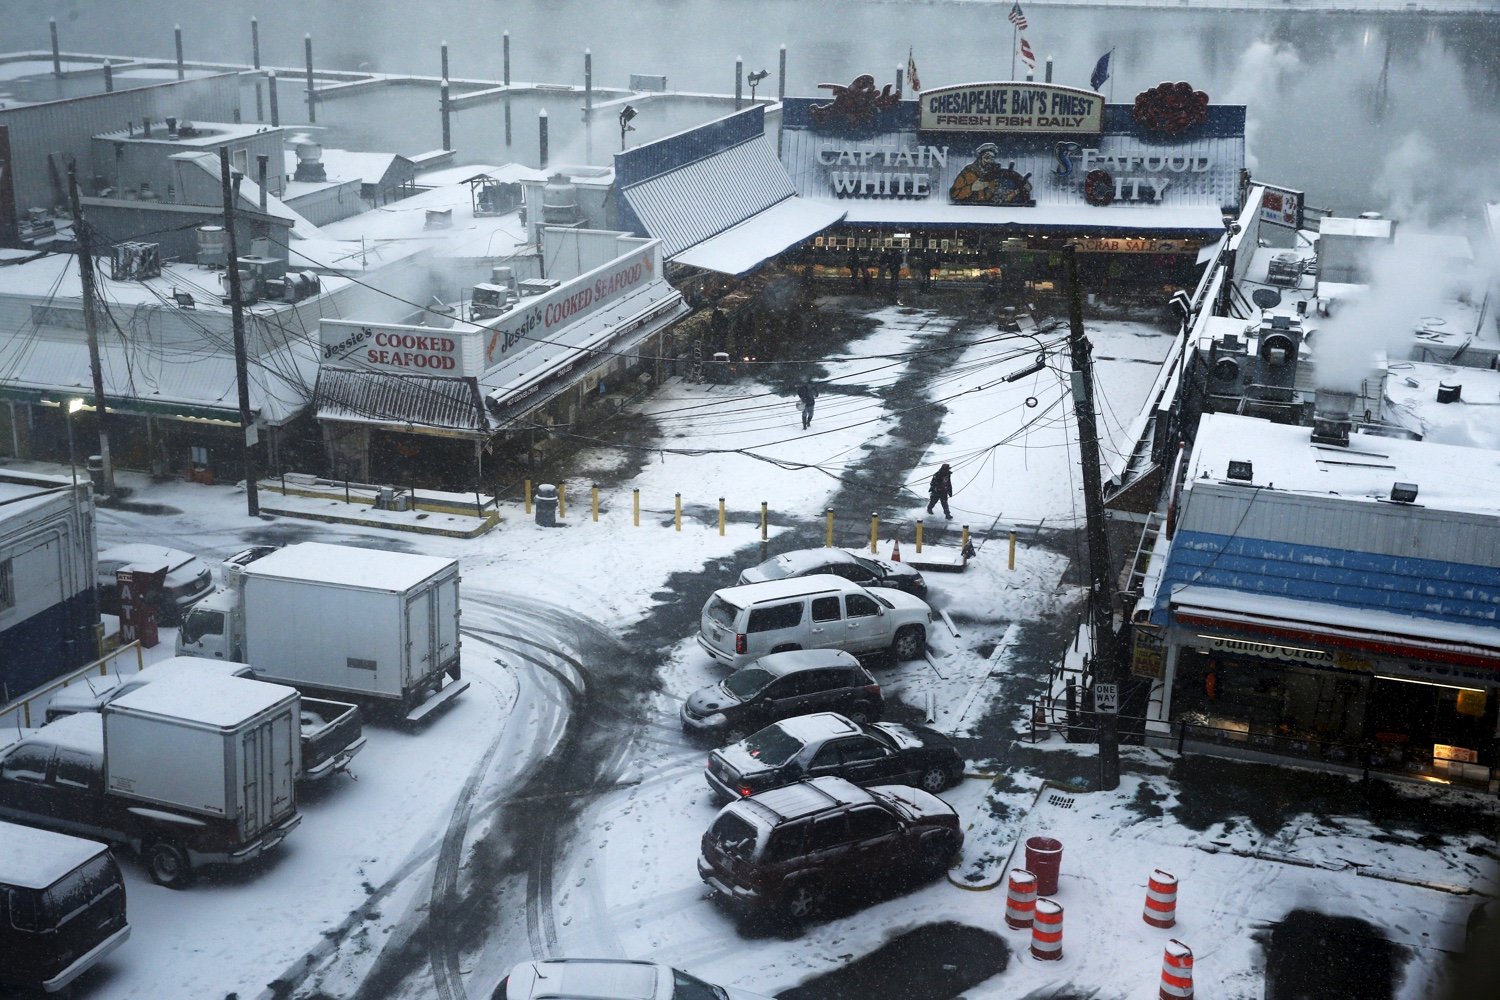 People buy seafood at the Wharf as snow begins to fall in DC, Jan 22 2016. REUTERS